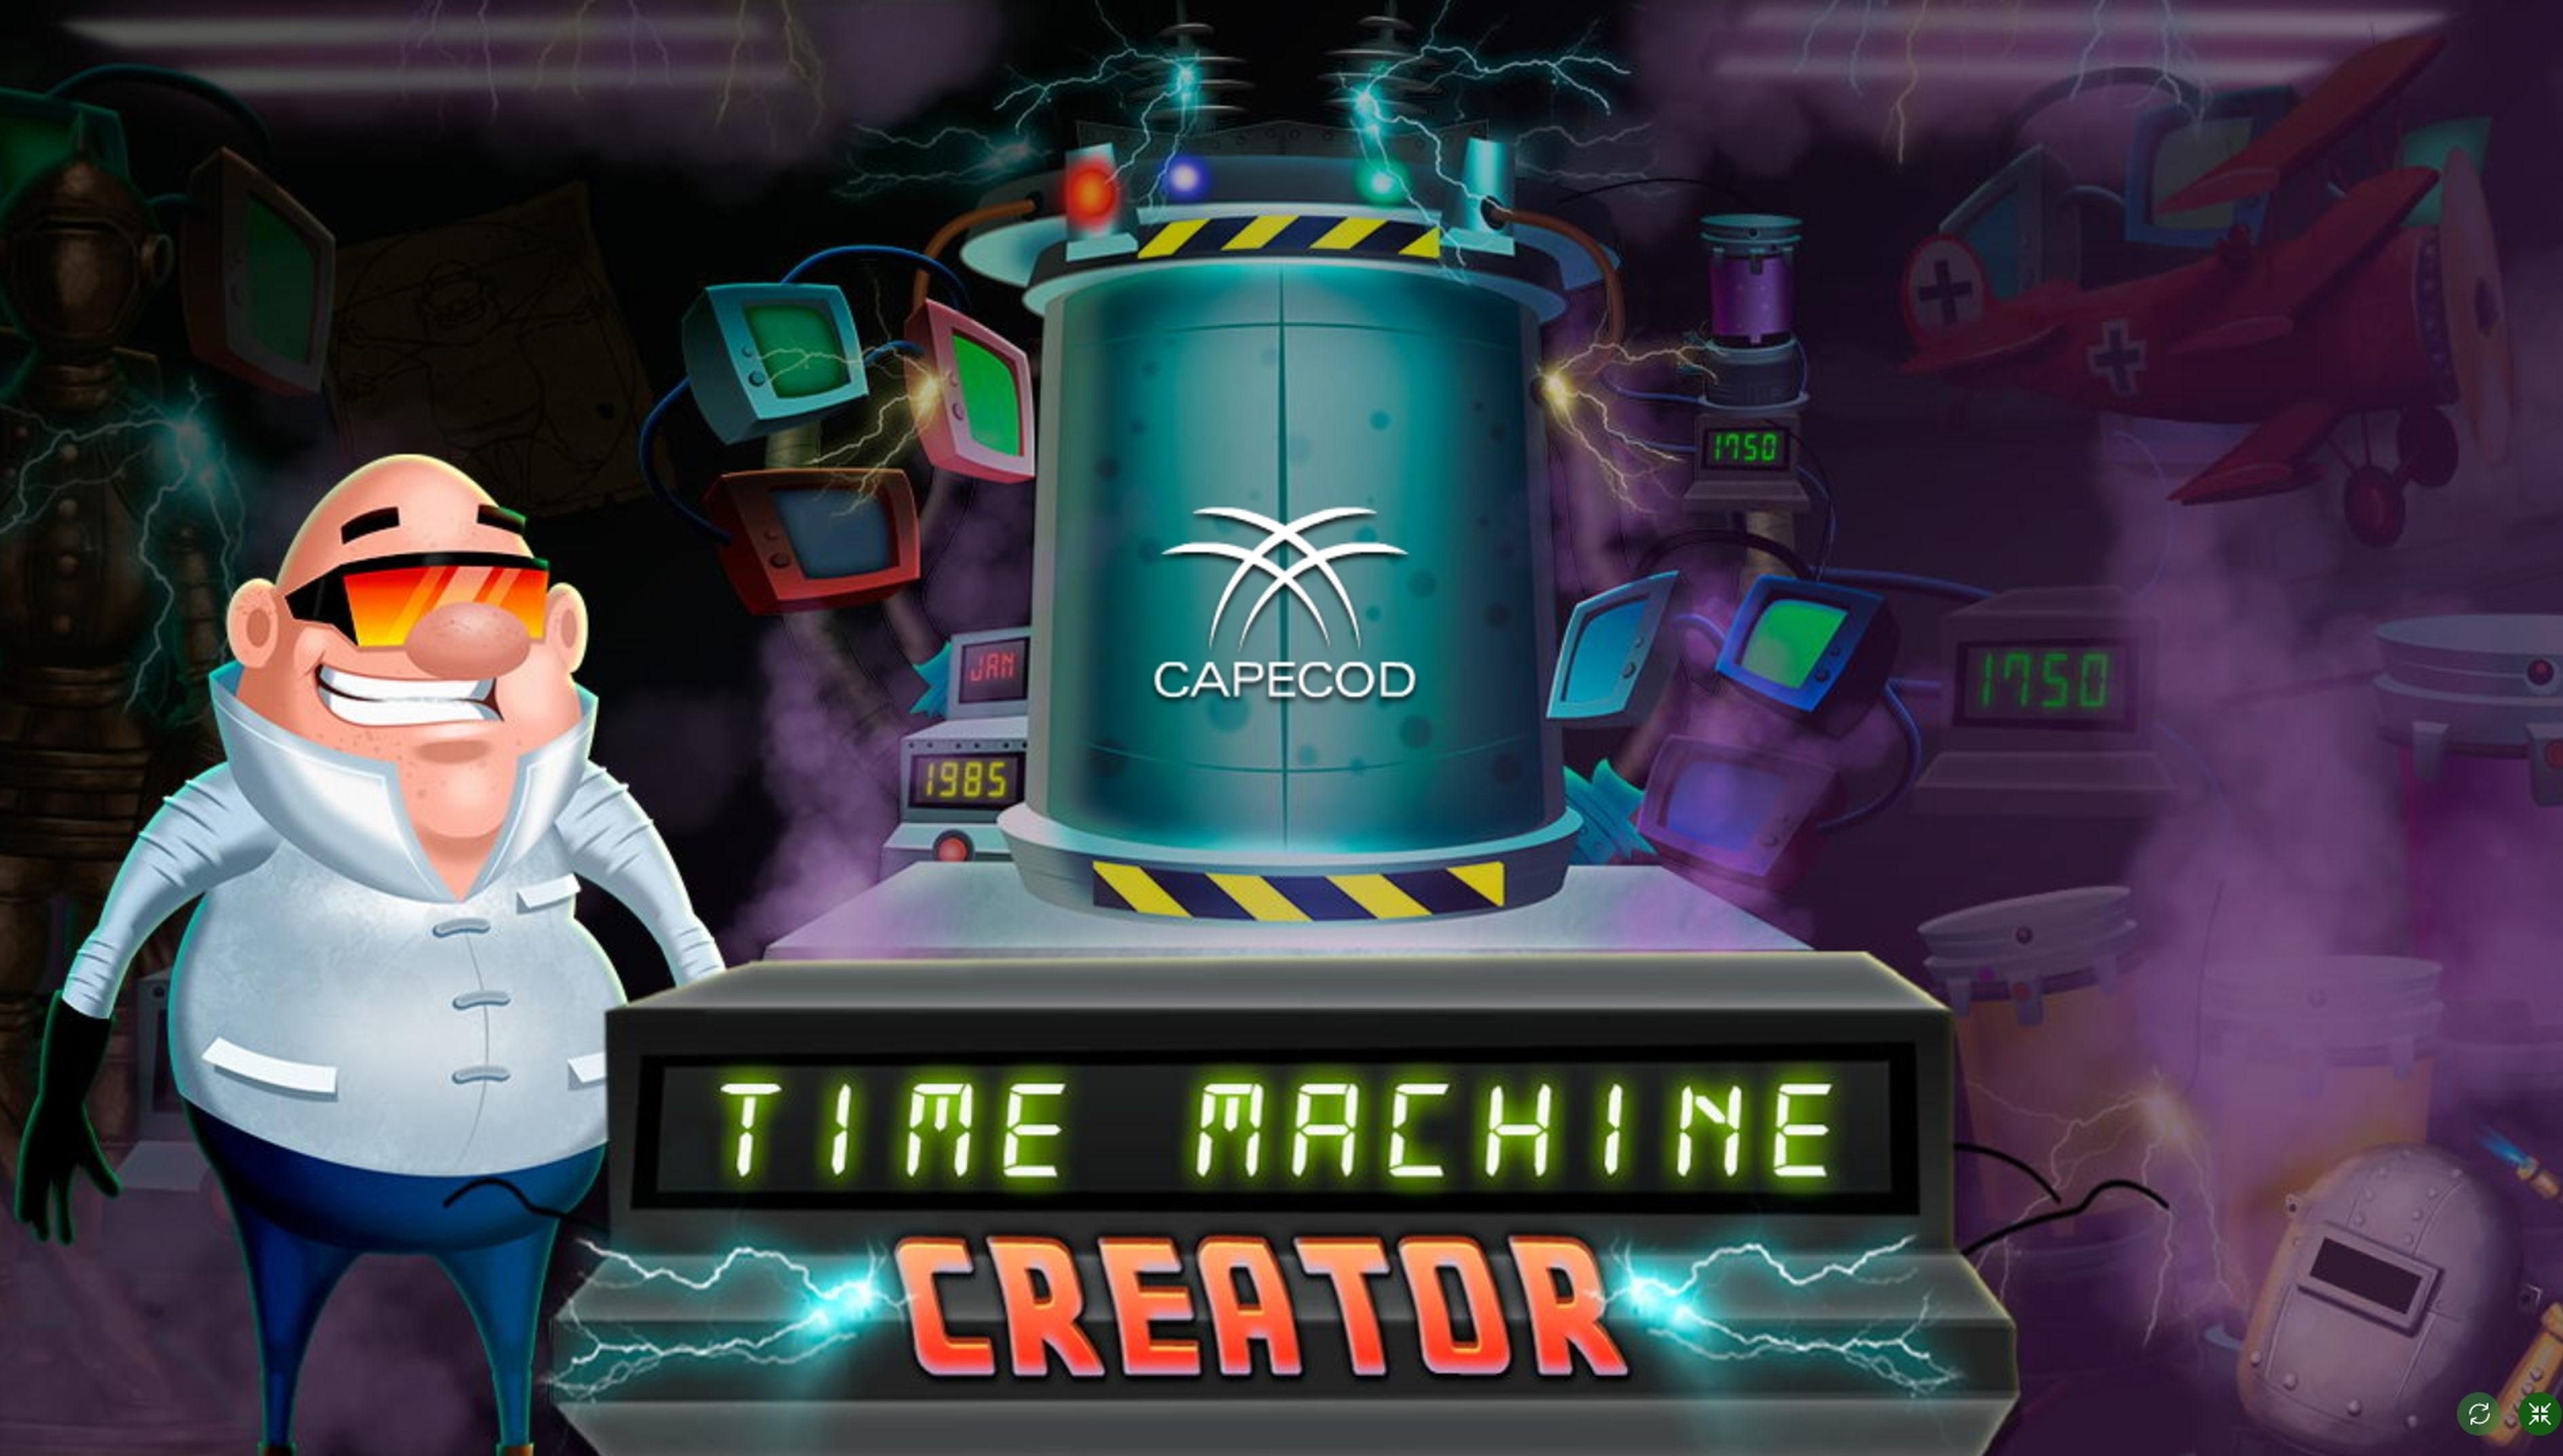 Play Time Machine Creator Free Casino Slot Game by Capecod Gaming